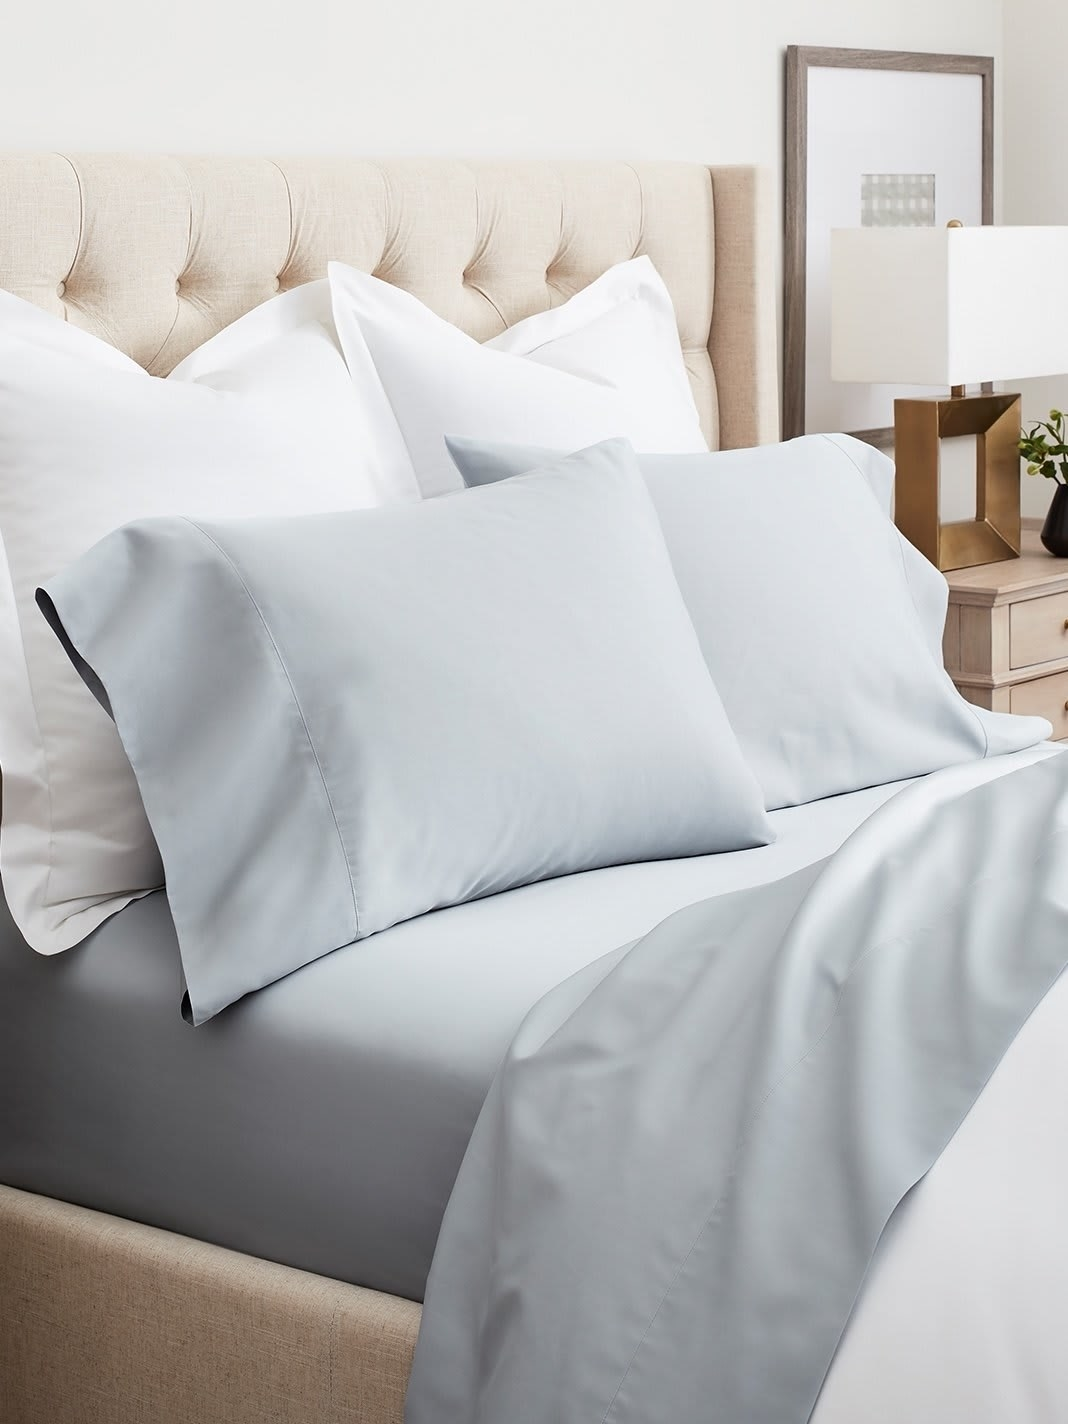 A bed with pale blue sheets and pillowcases